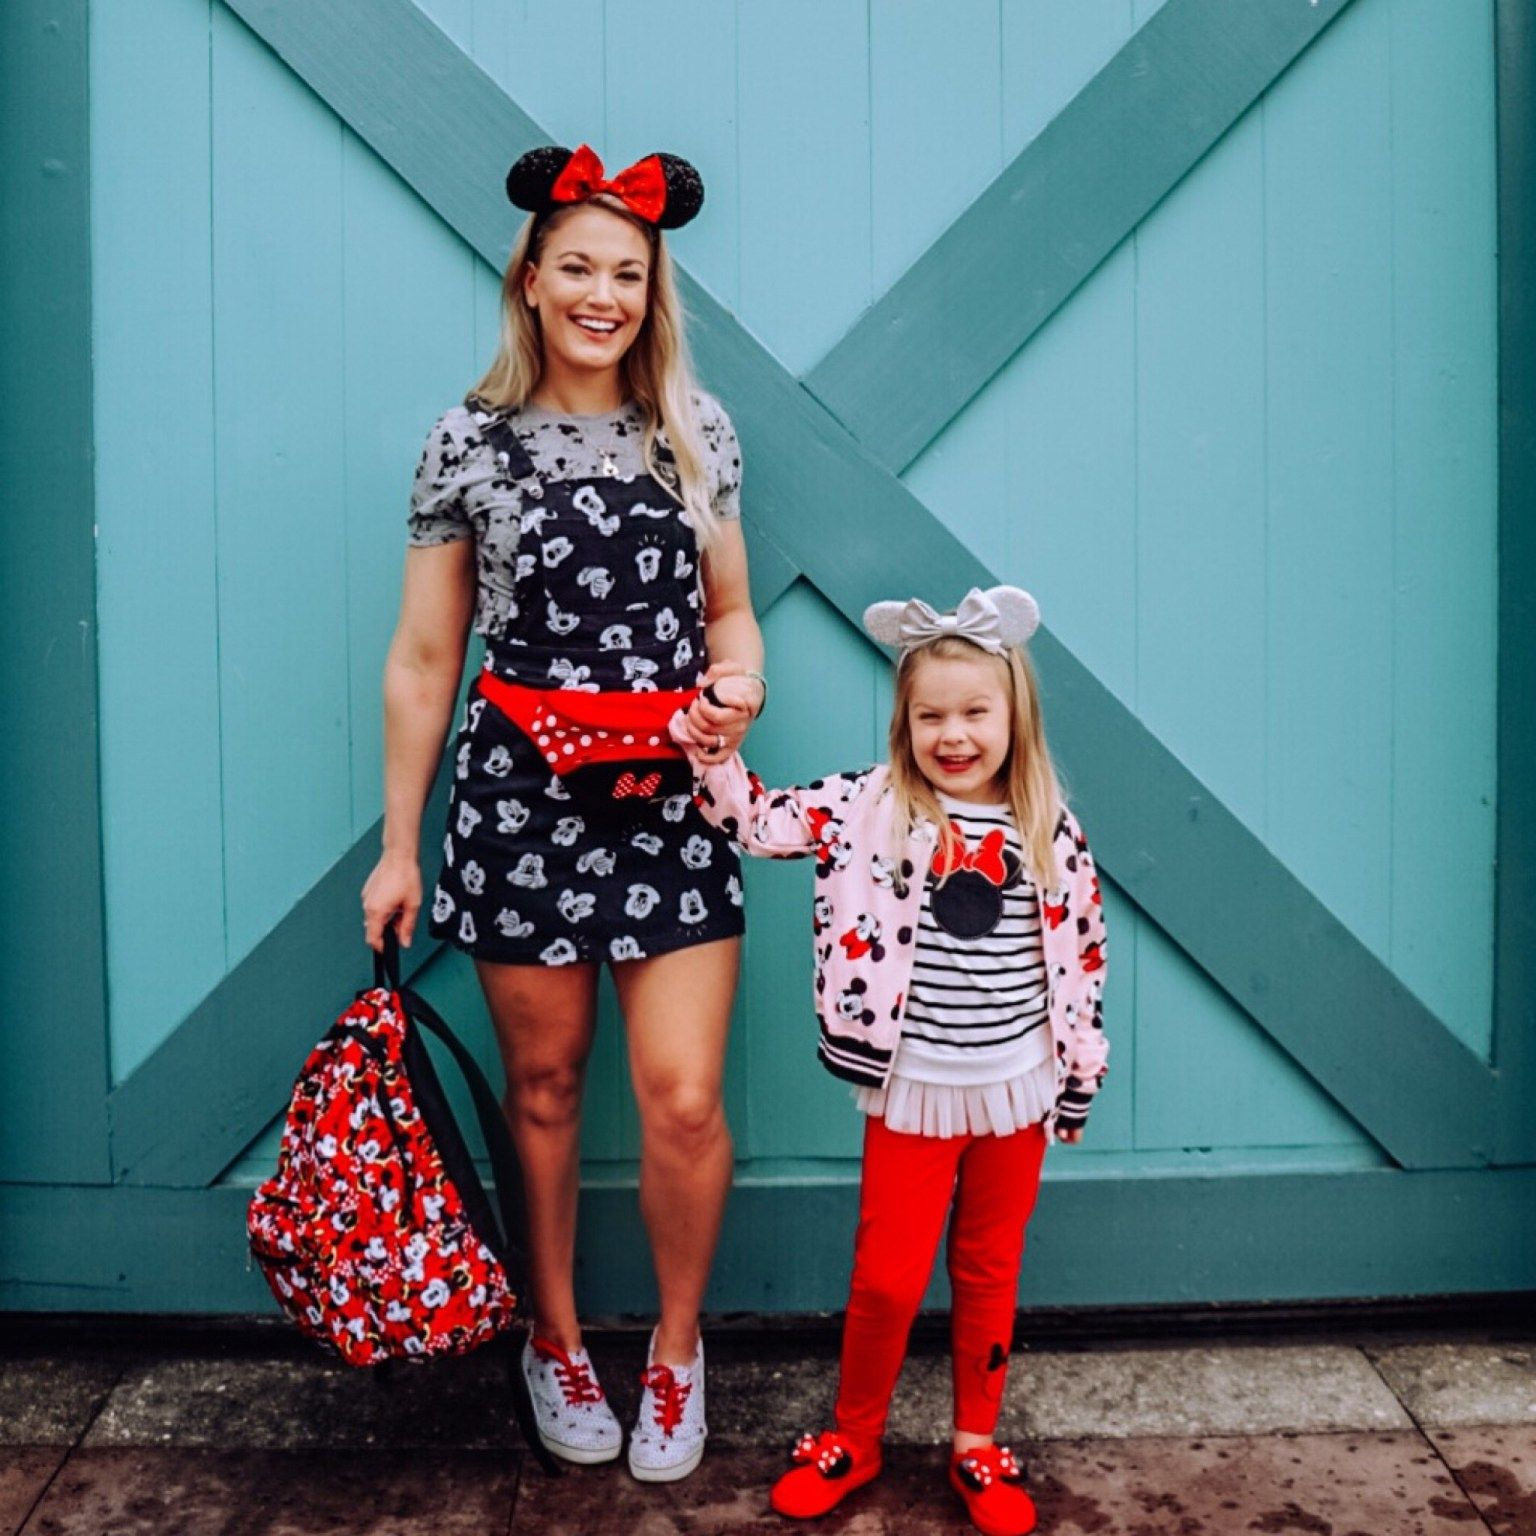 Where to Buy Disney Outfits - Style Her Strong